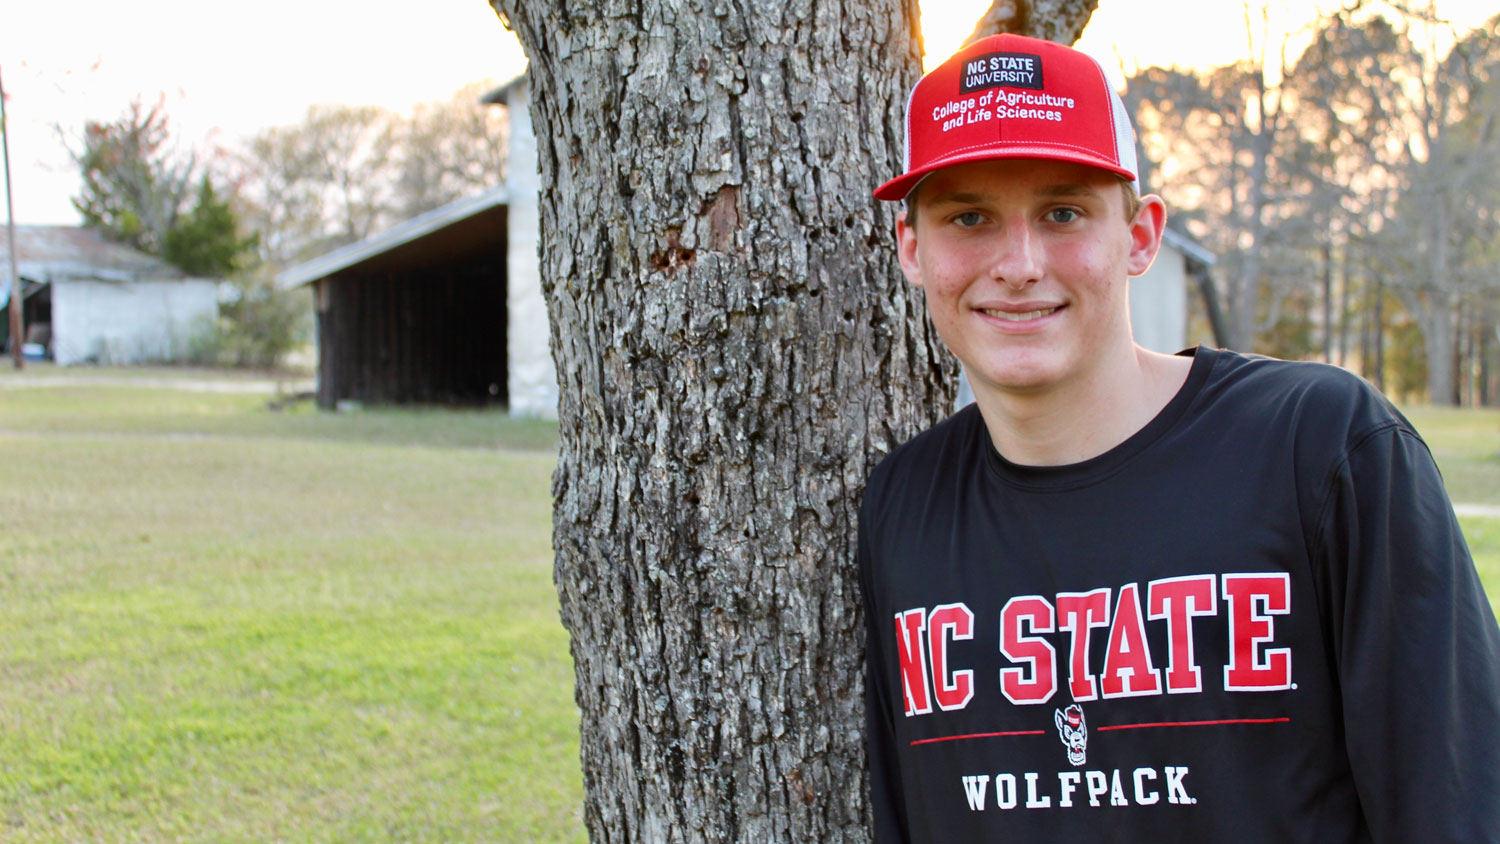 A young man standing next to a tree on a farm wearing NC State apparel.